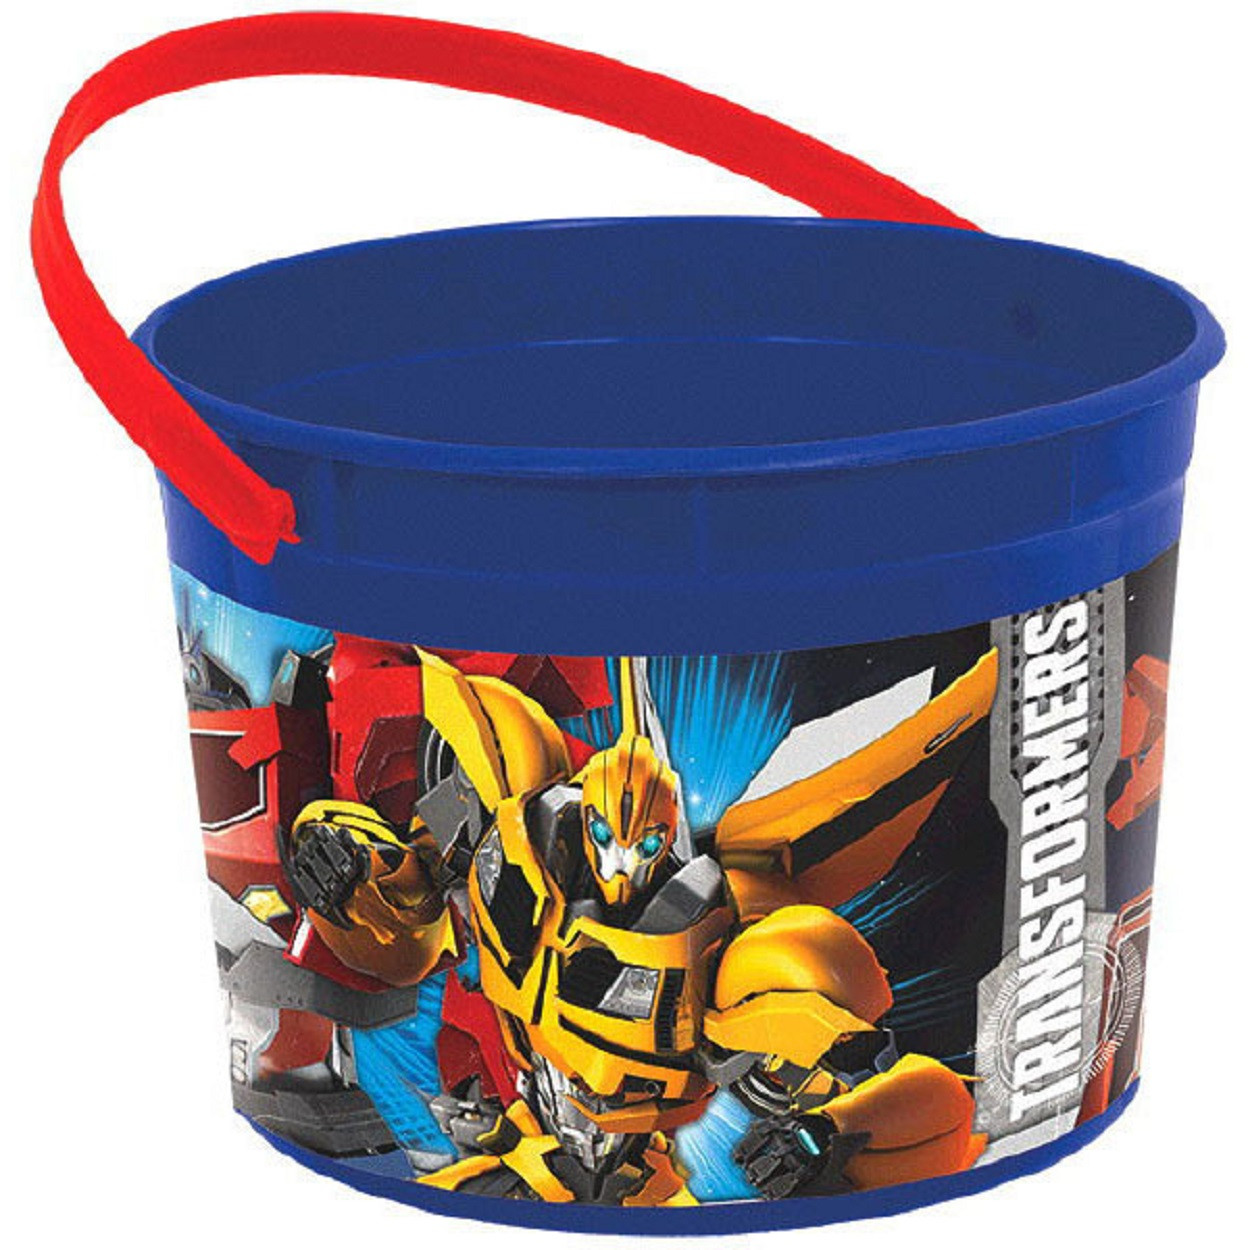 Transformers Plastic Favor Bucket Container ( 1pc ) - Blue